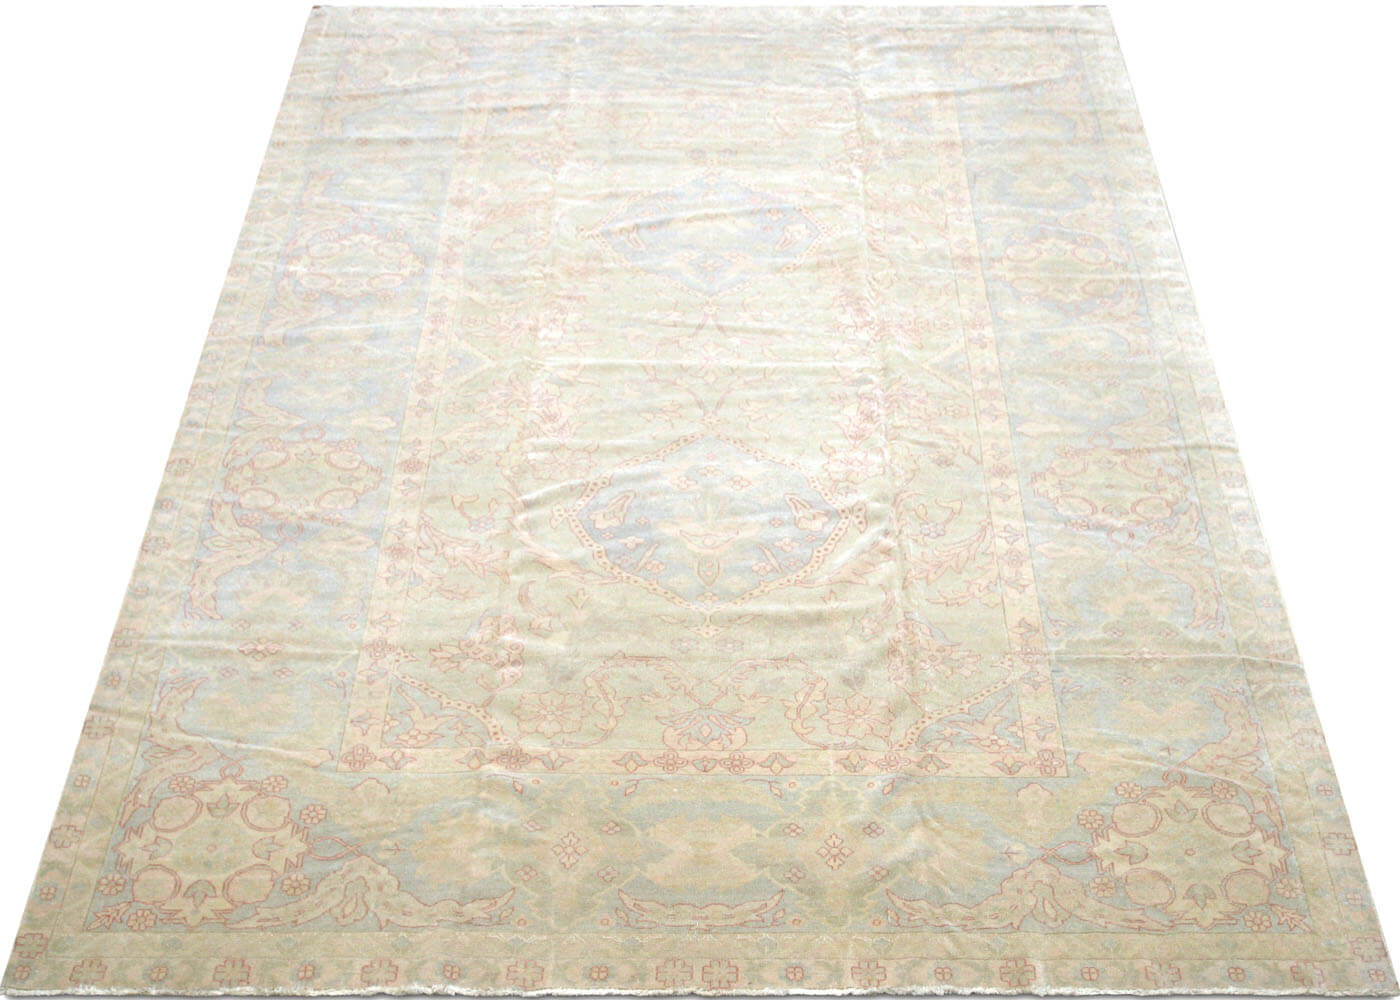 "Recently Woven Egyptian Sultanabad Carpet - 10'4"" x 13'6"""